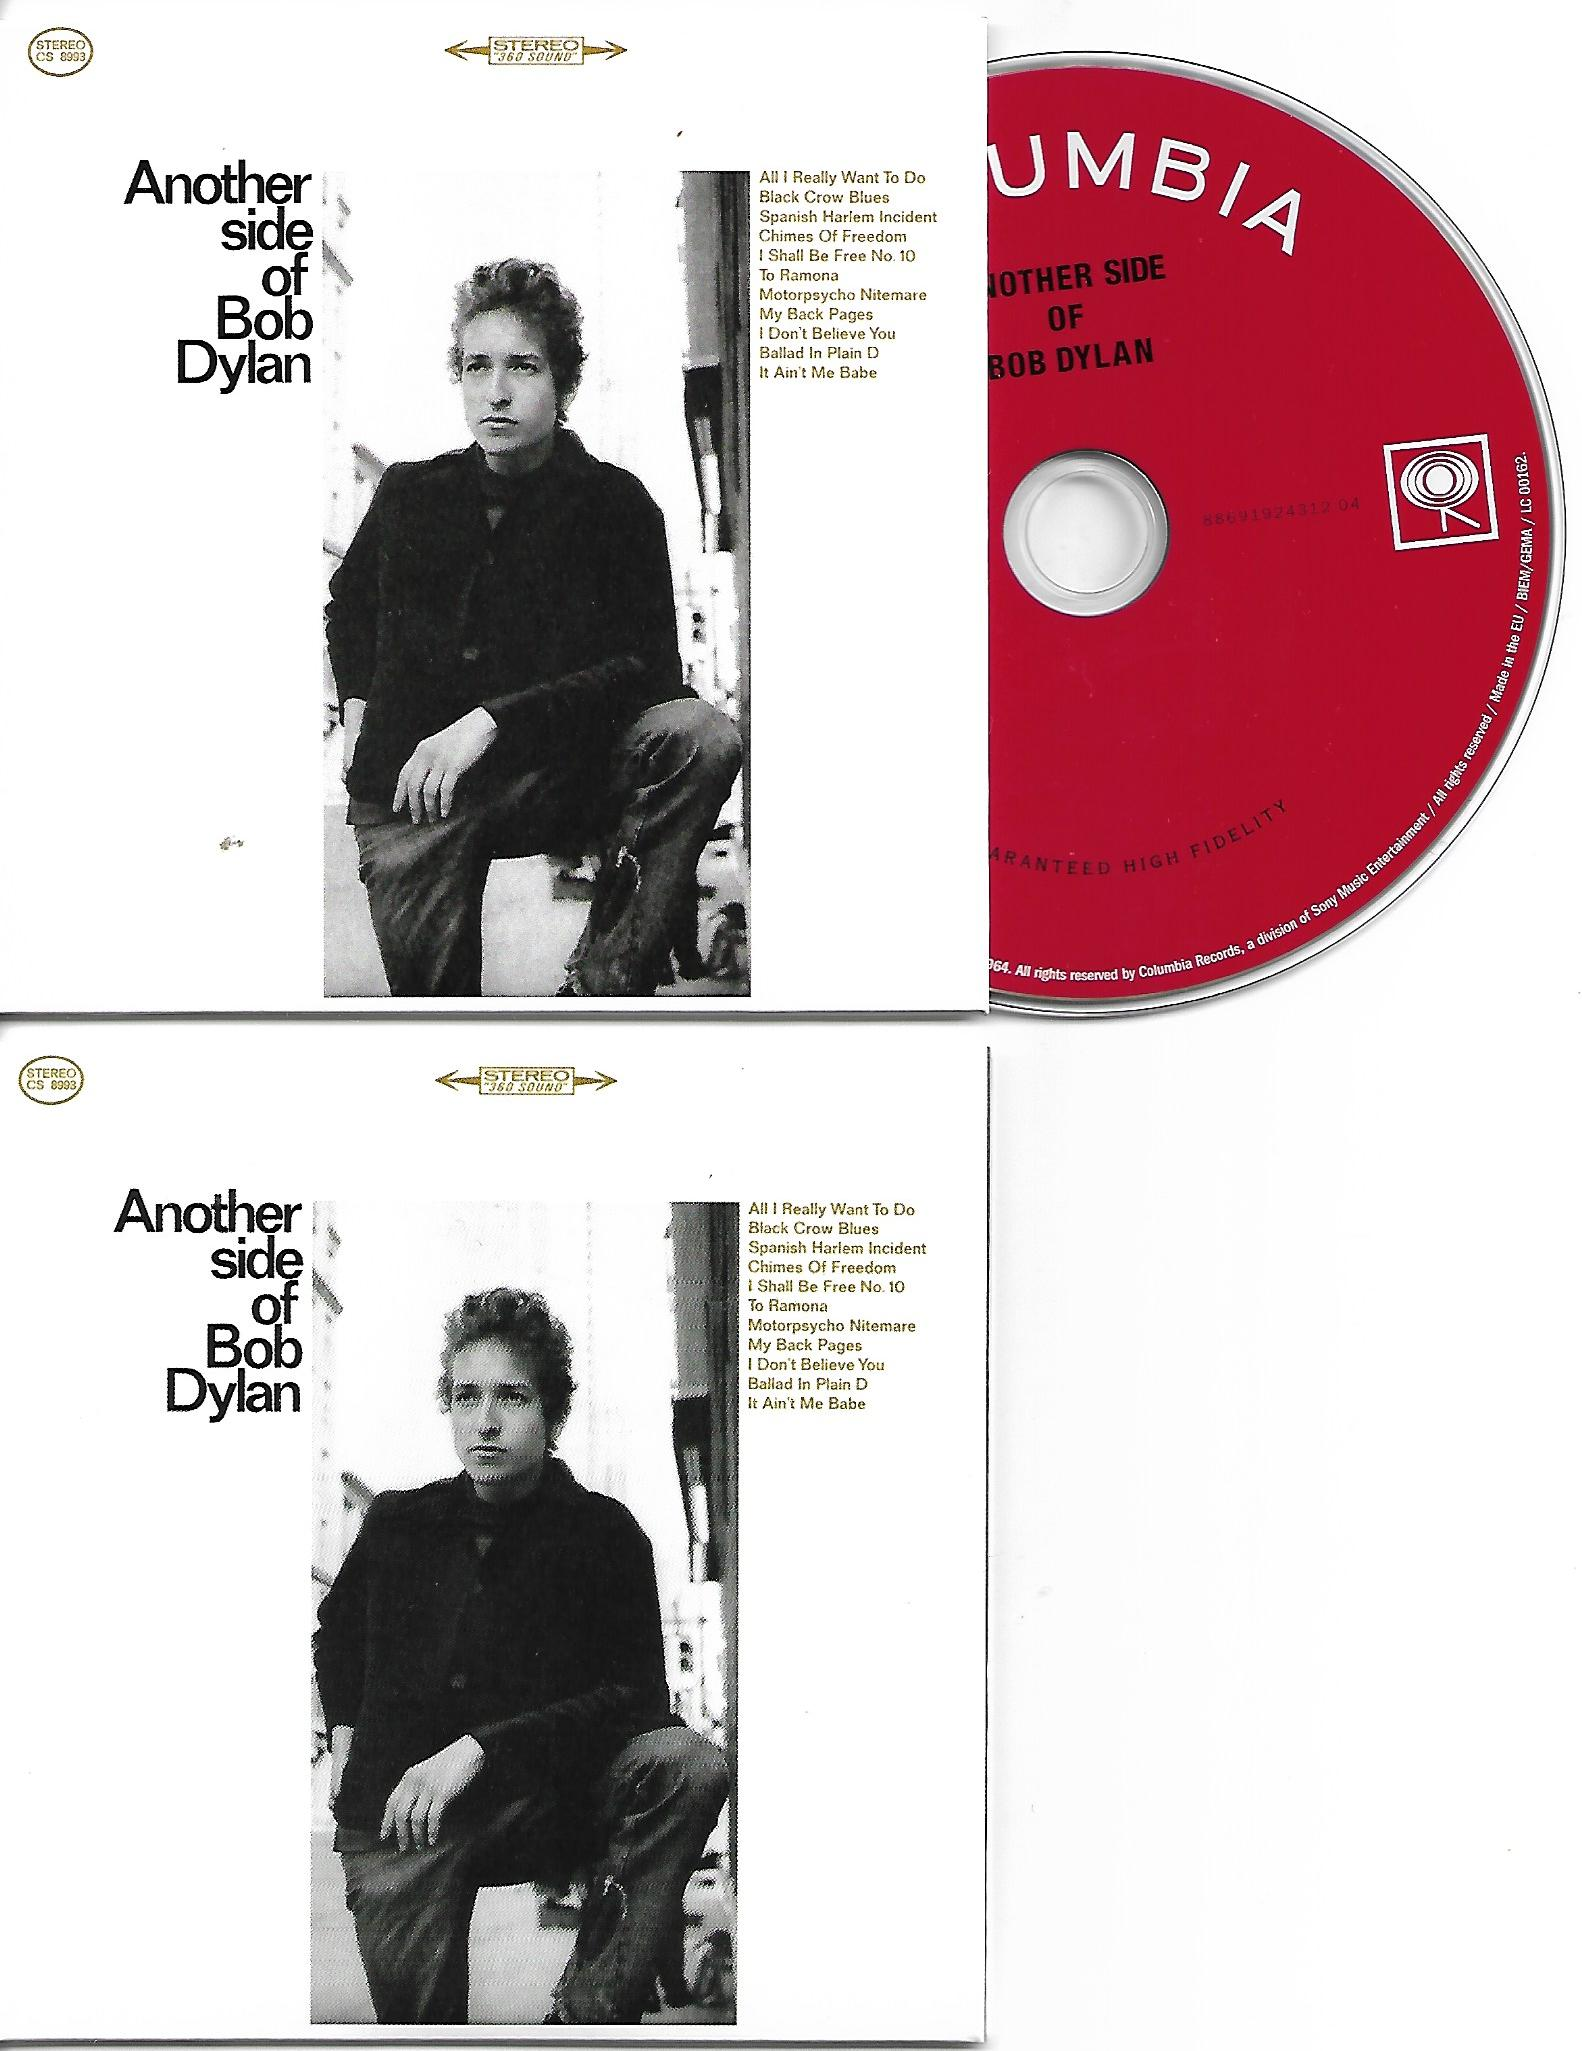 BOB DYLAN - Another Side of Bob Dylan 1964 - MINI LP REPLICA CARD BOARD SLEEVE - CD